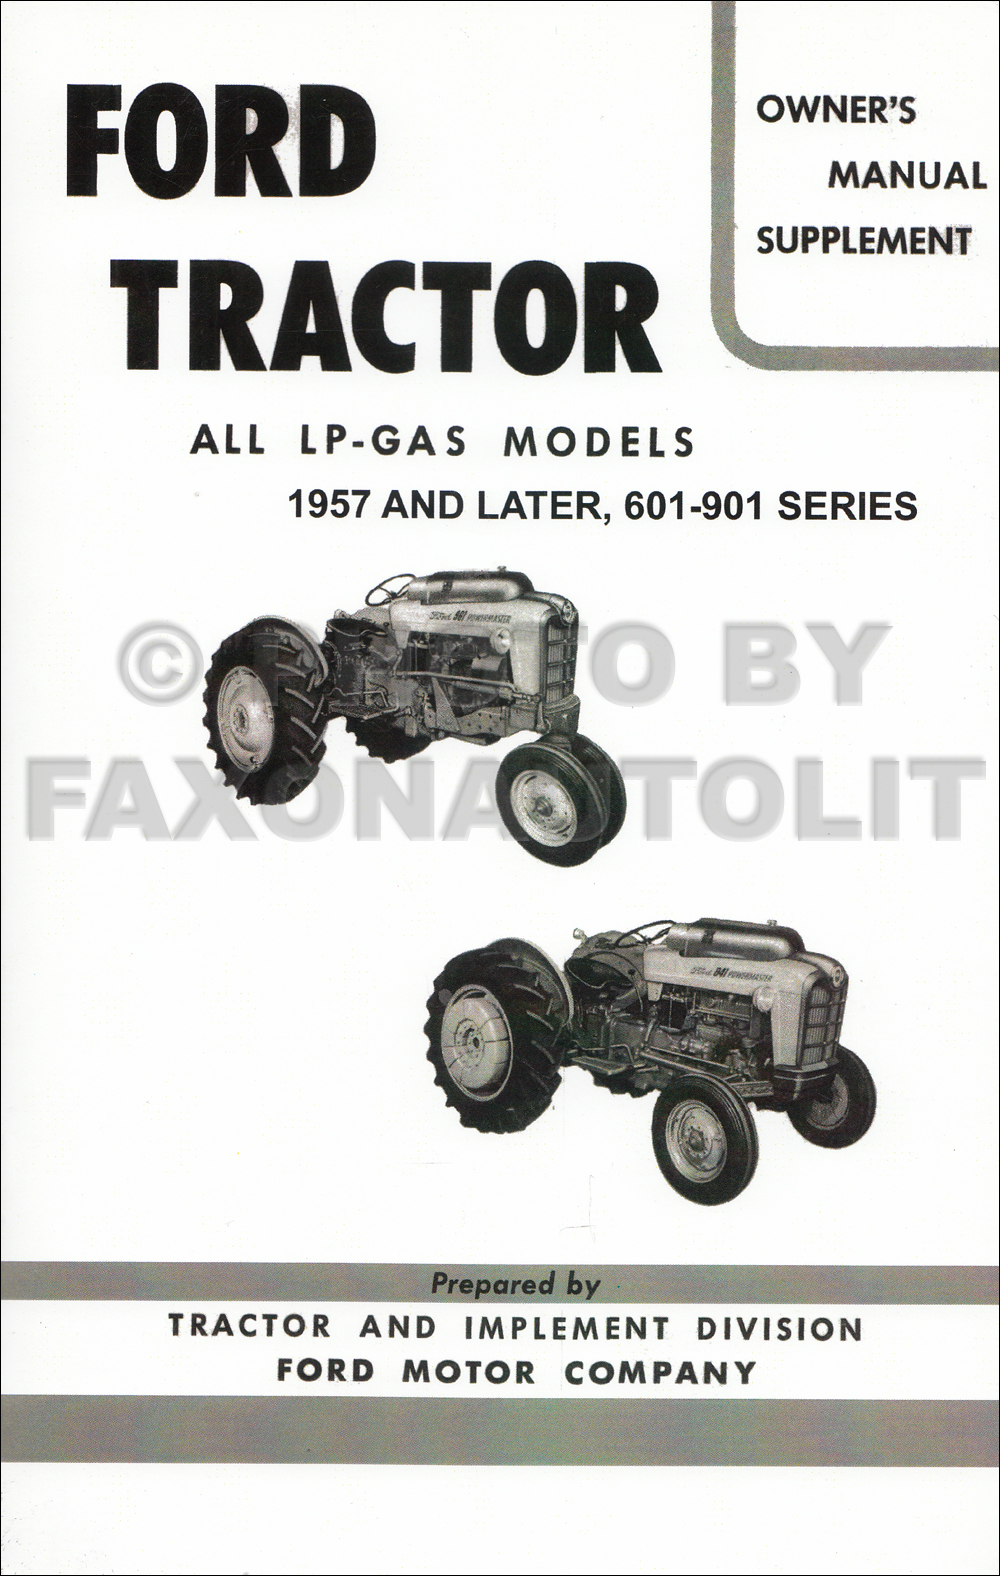 1957-1962 Ford LP-Gas Tractor Owners Manual Supplement Reprint